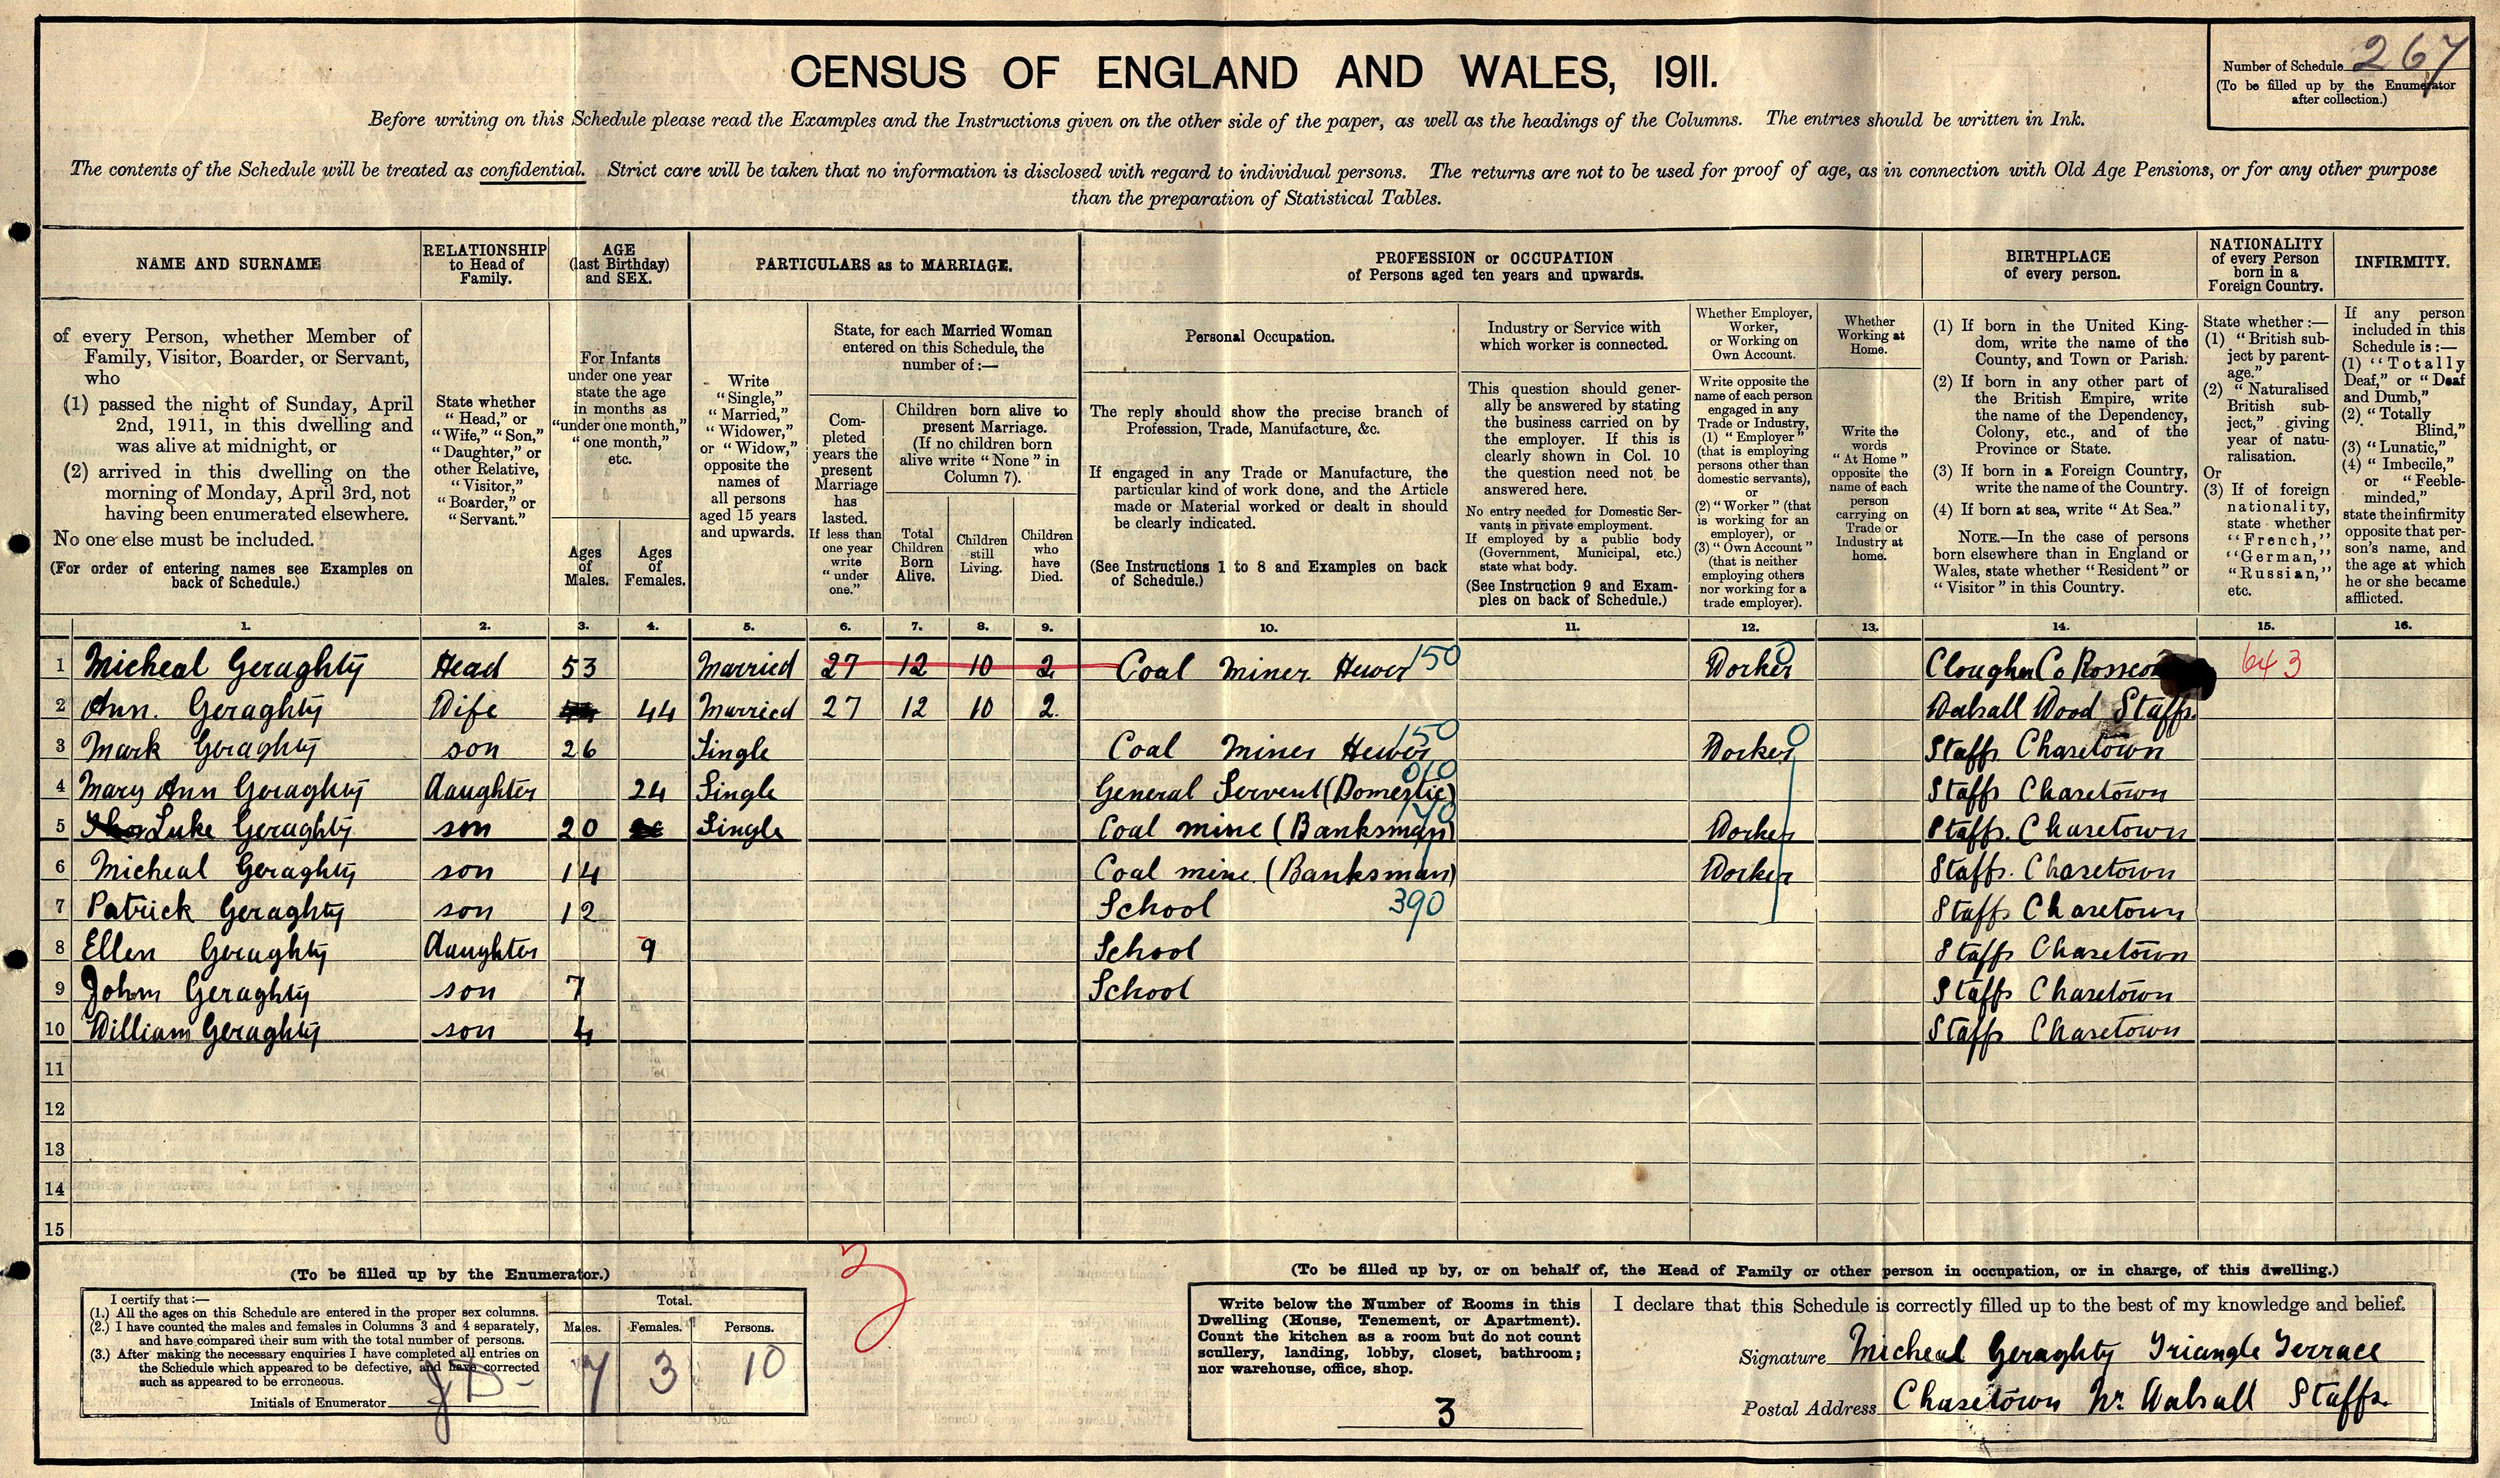 Extract from the 1911 census